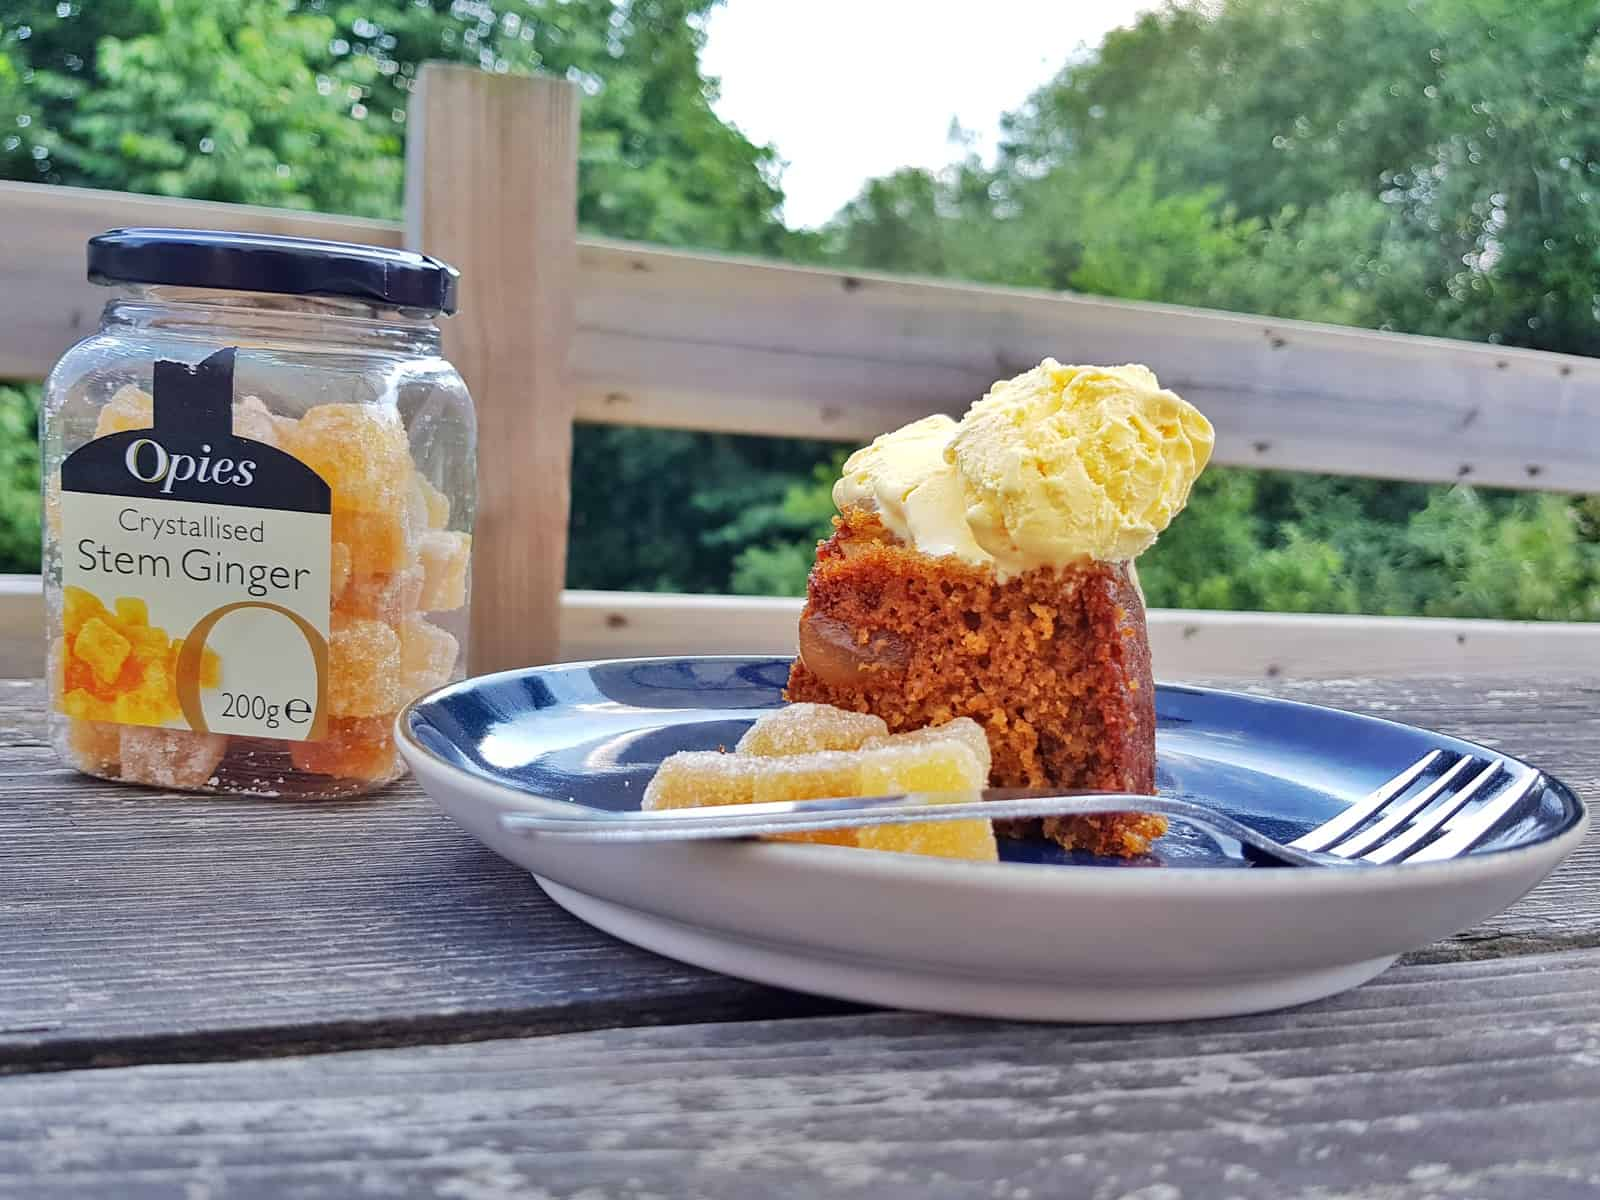 jar of opies crystallised stem ginger with ginger cake and vanilla ice cream